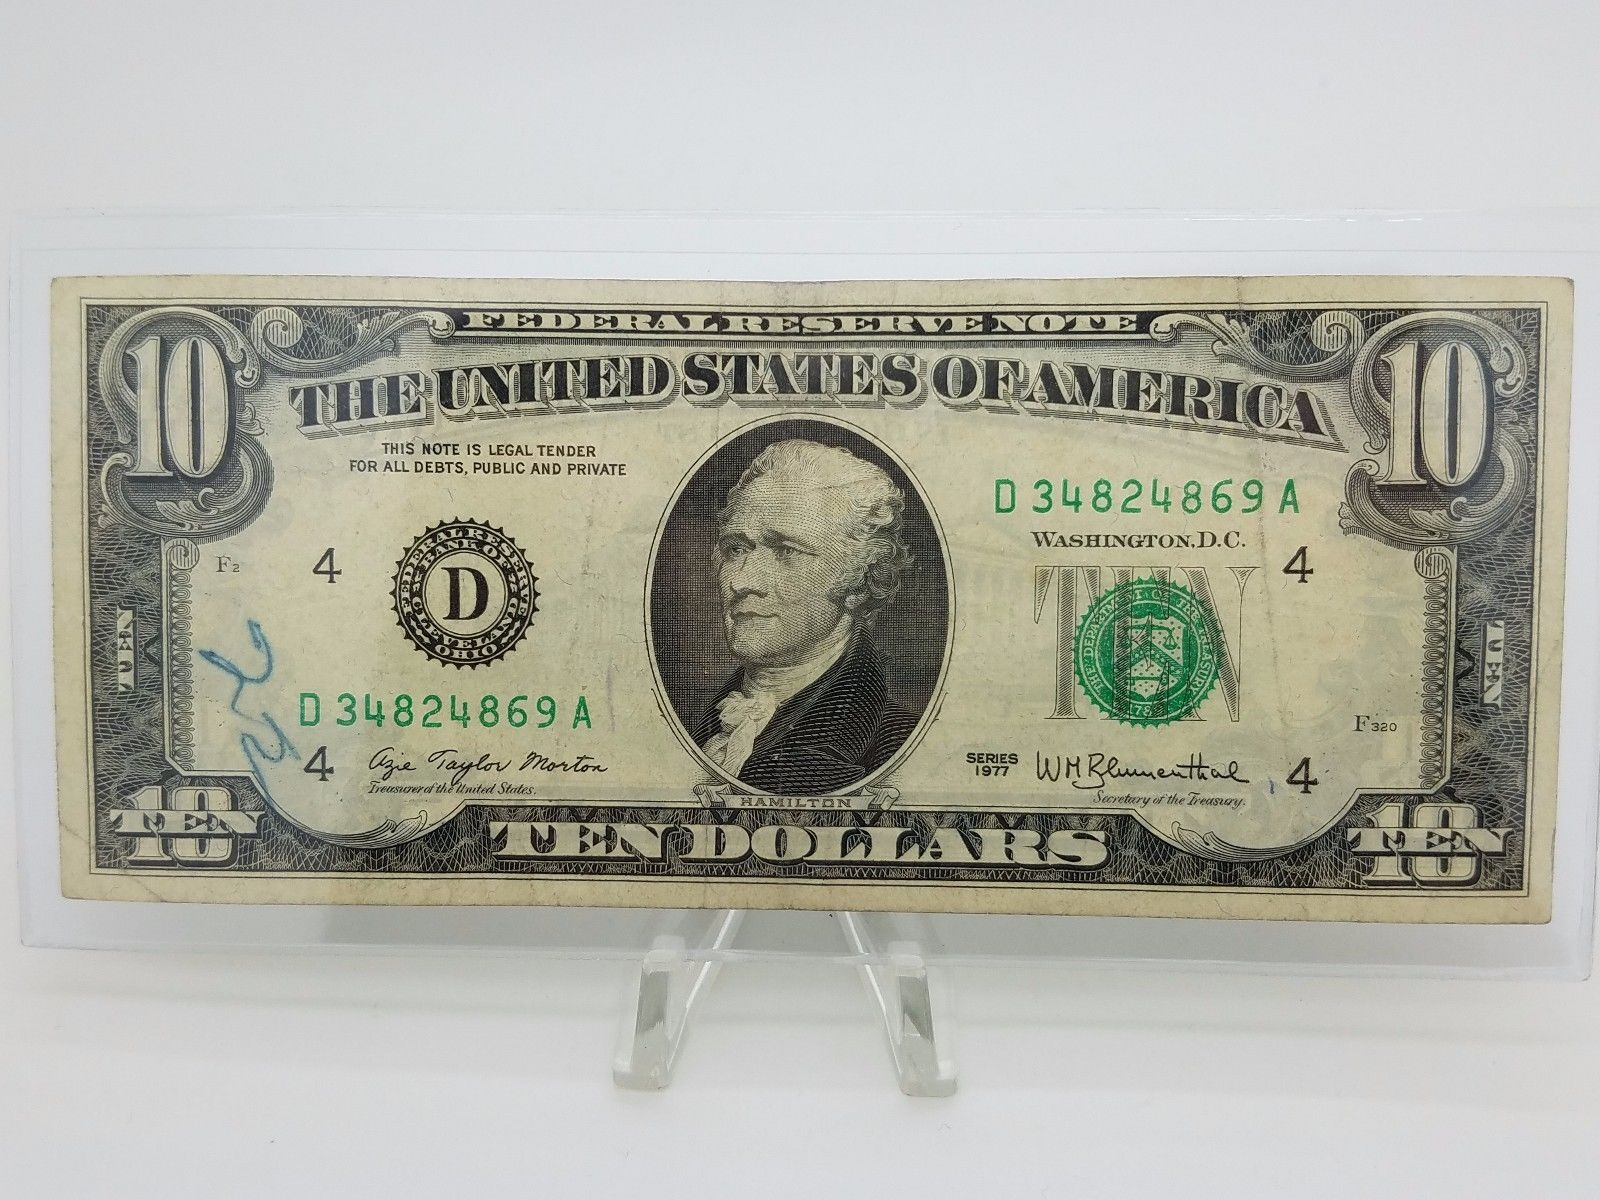 Coins Collectibles Old Paper Money 1977 Ten 10 Dollar Bill Federal Reserve Note Series Cleveland Coins 10 Dollar Bill Federal Reserve Note Valuable Coins